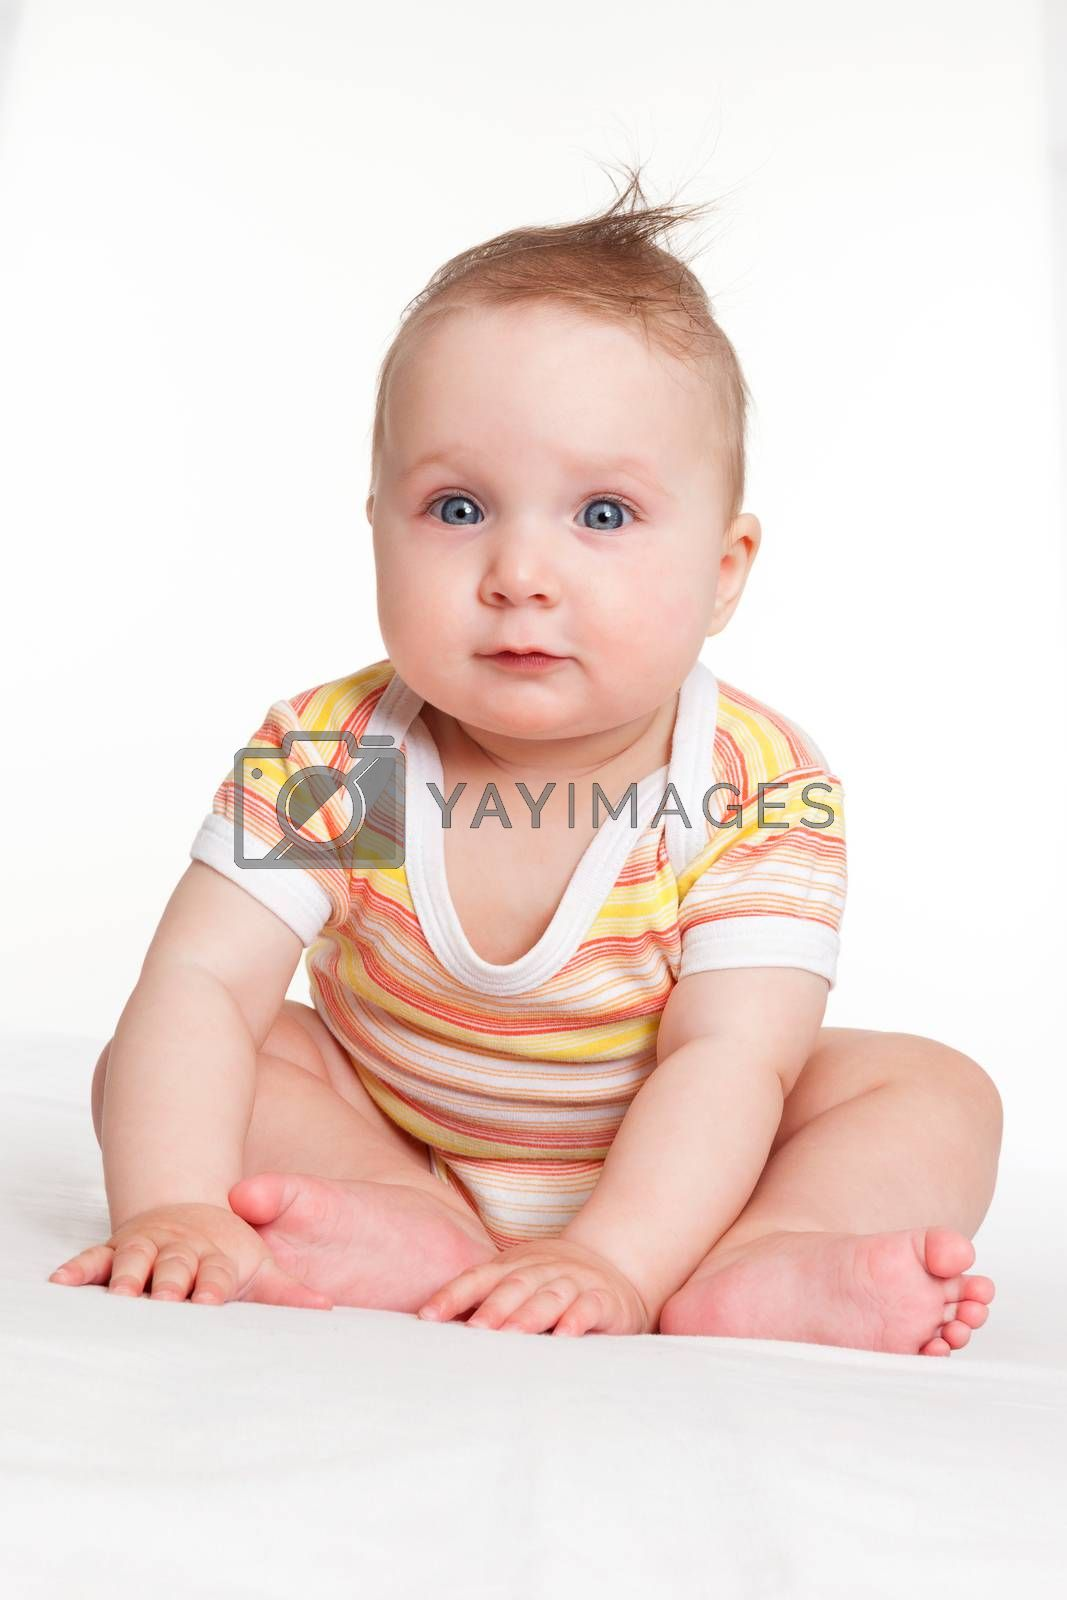 Cute caucasian baby girl sitting and looking into the camera isolated on white background.